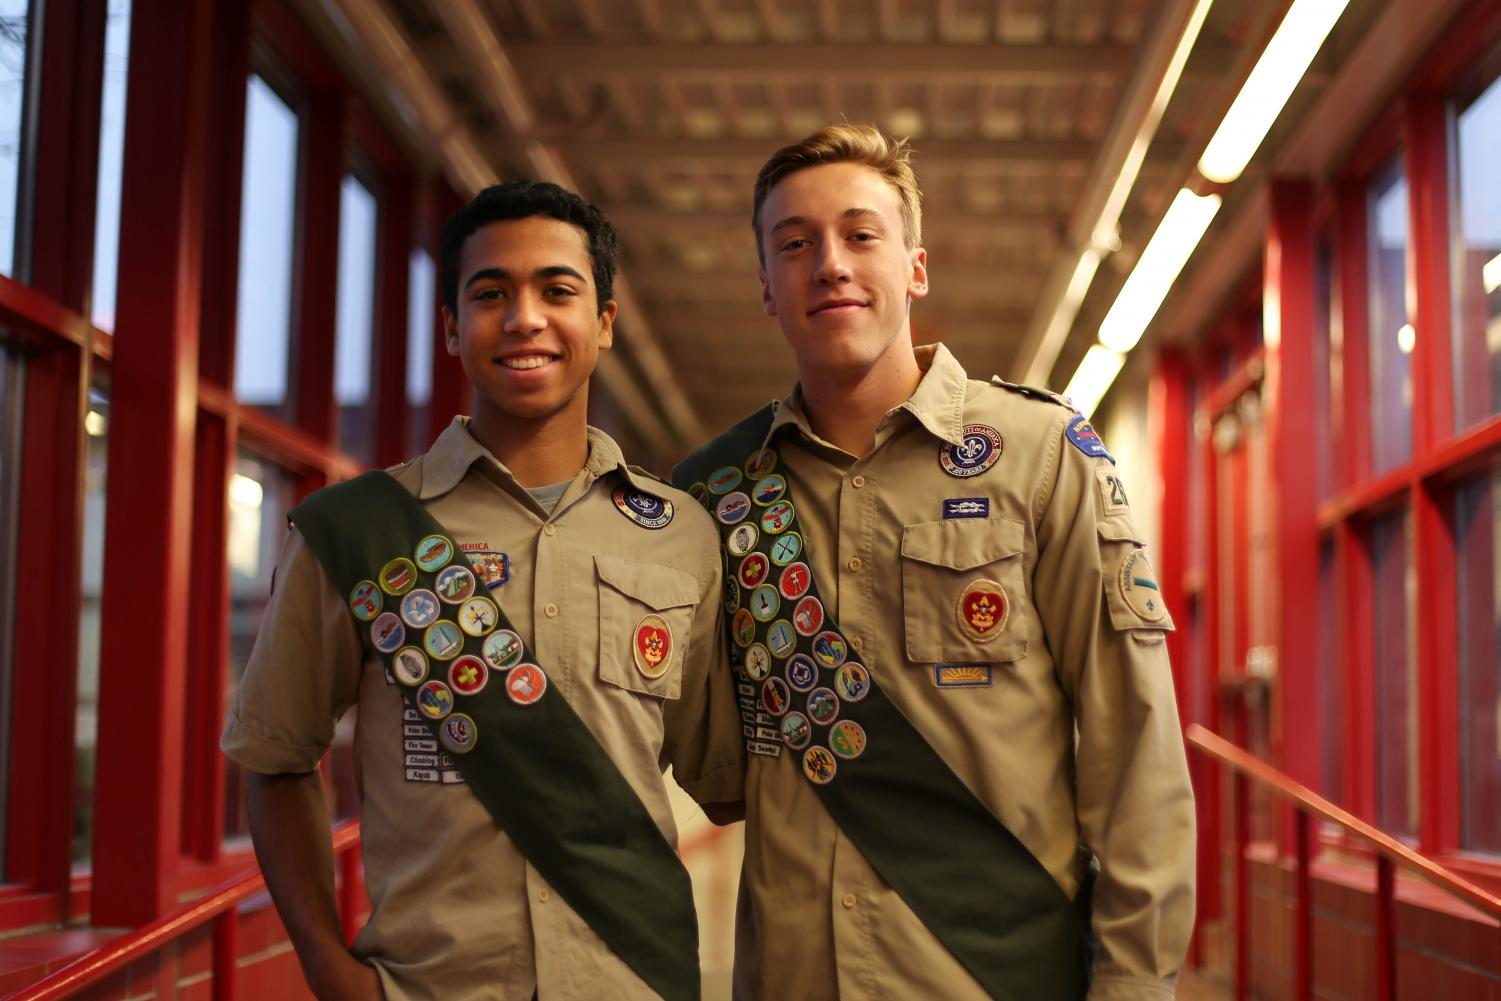 Seniors Sam Charles and James Norkosky help their communities through the Scout program.